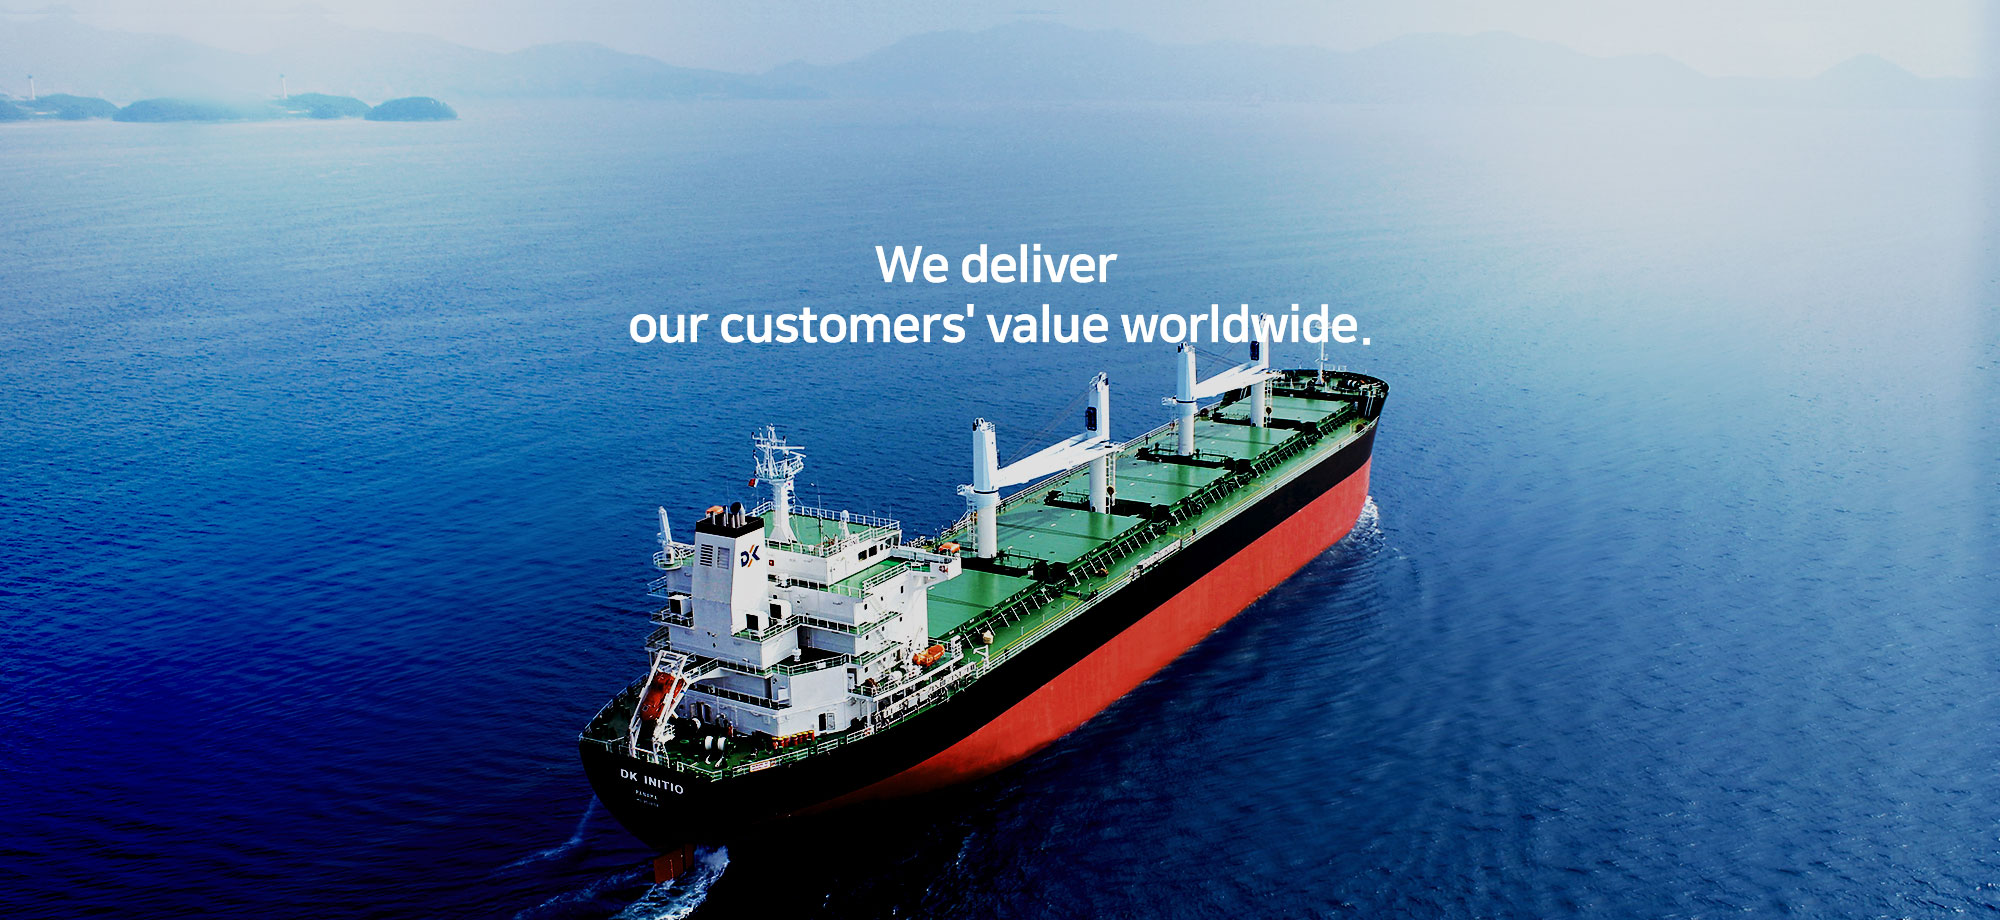 We deliver our customers' value worldwide